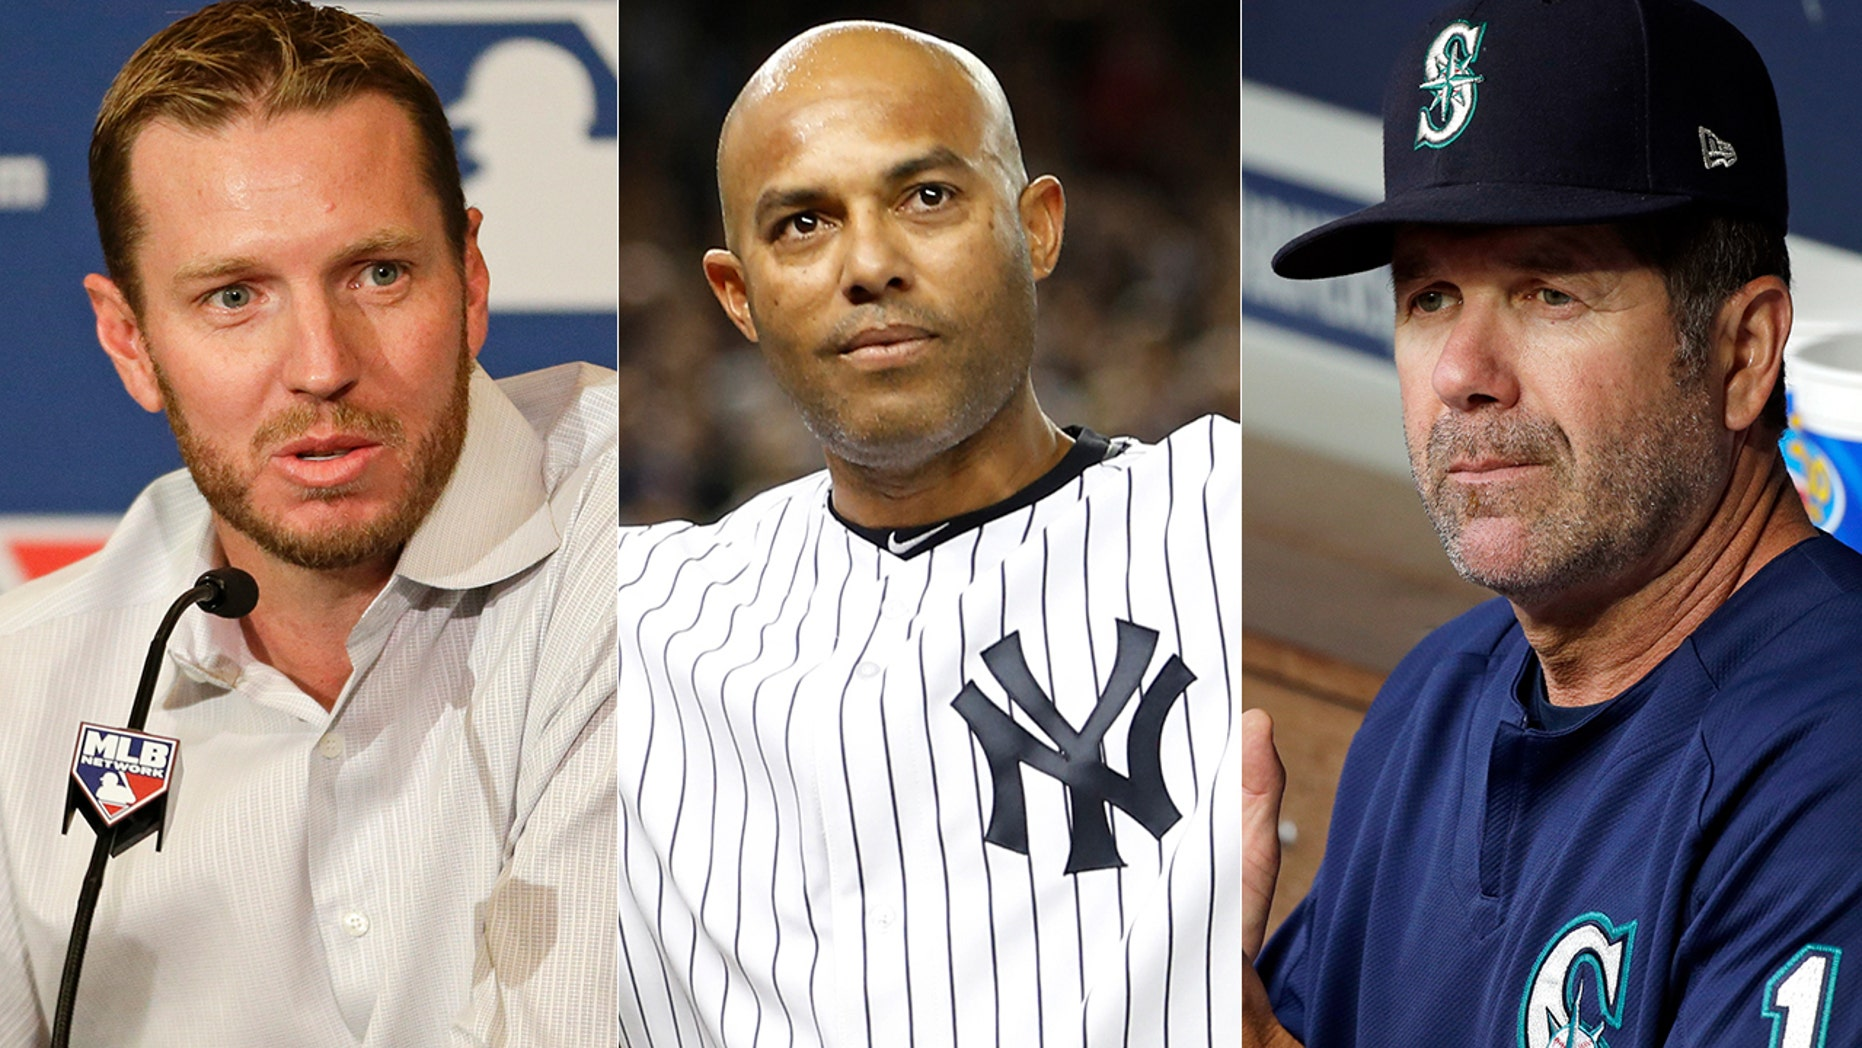 Roy Halladay, left, Mariano Rivera, center, and Edgar Martinez are the favorites to get into the Baseball Hall of Fame this year.